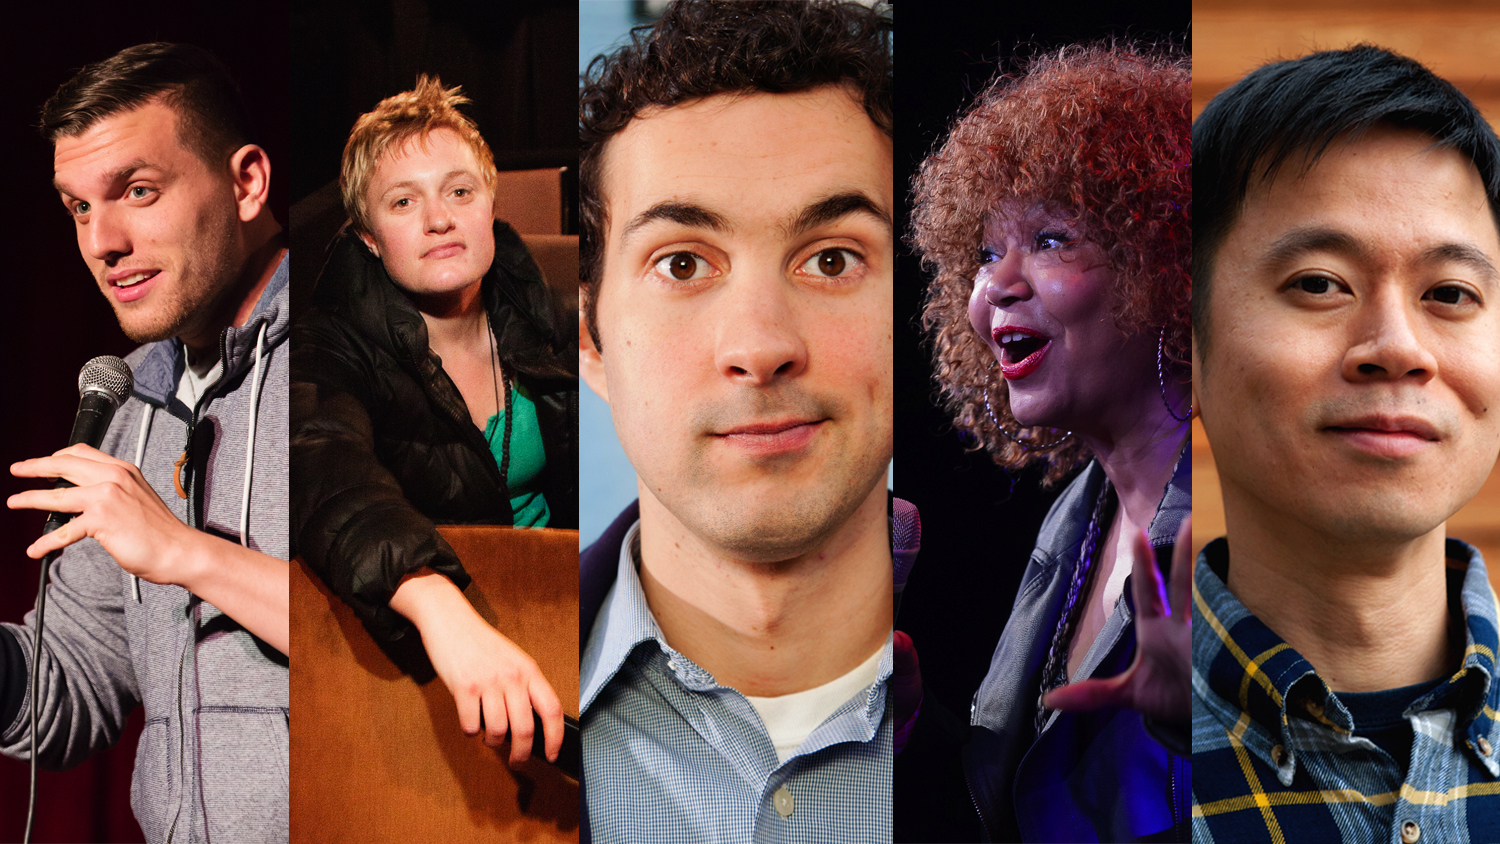 See who's performing on this month's Time Out New York Comedy Showcase